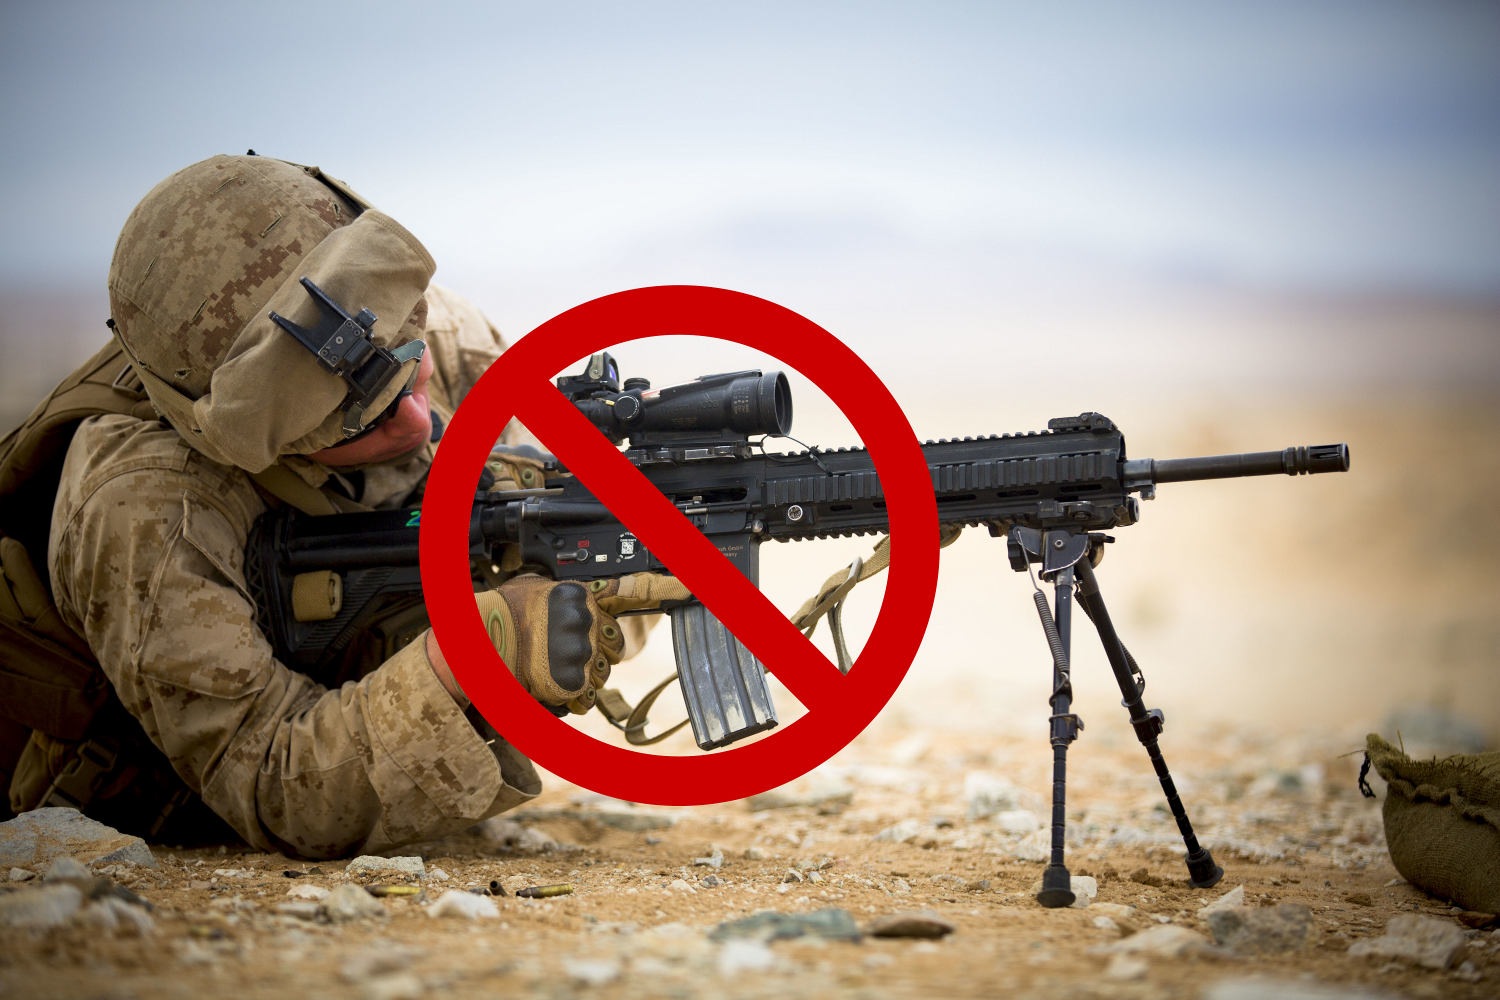 Why The M27 Iar Is Not Right Rifle For Marine Corps To Shoot A Deer With Diagram I Have Two Of These Rifles And Firearm Blog